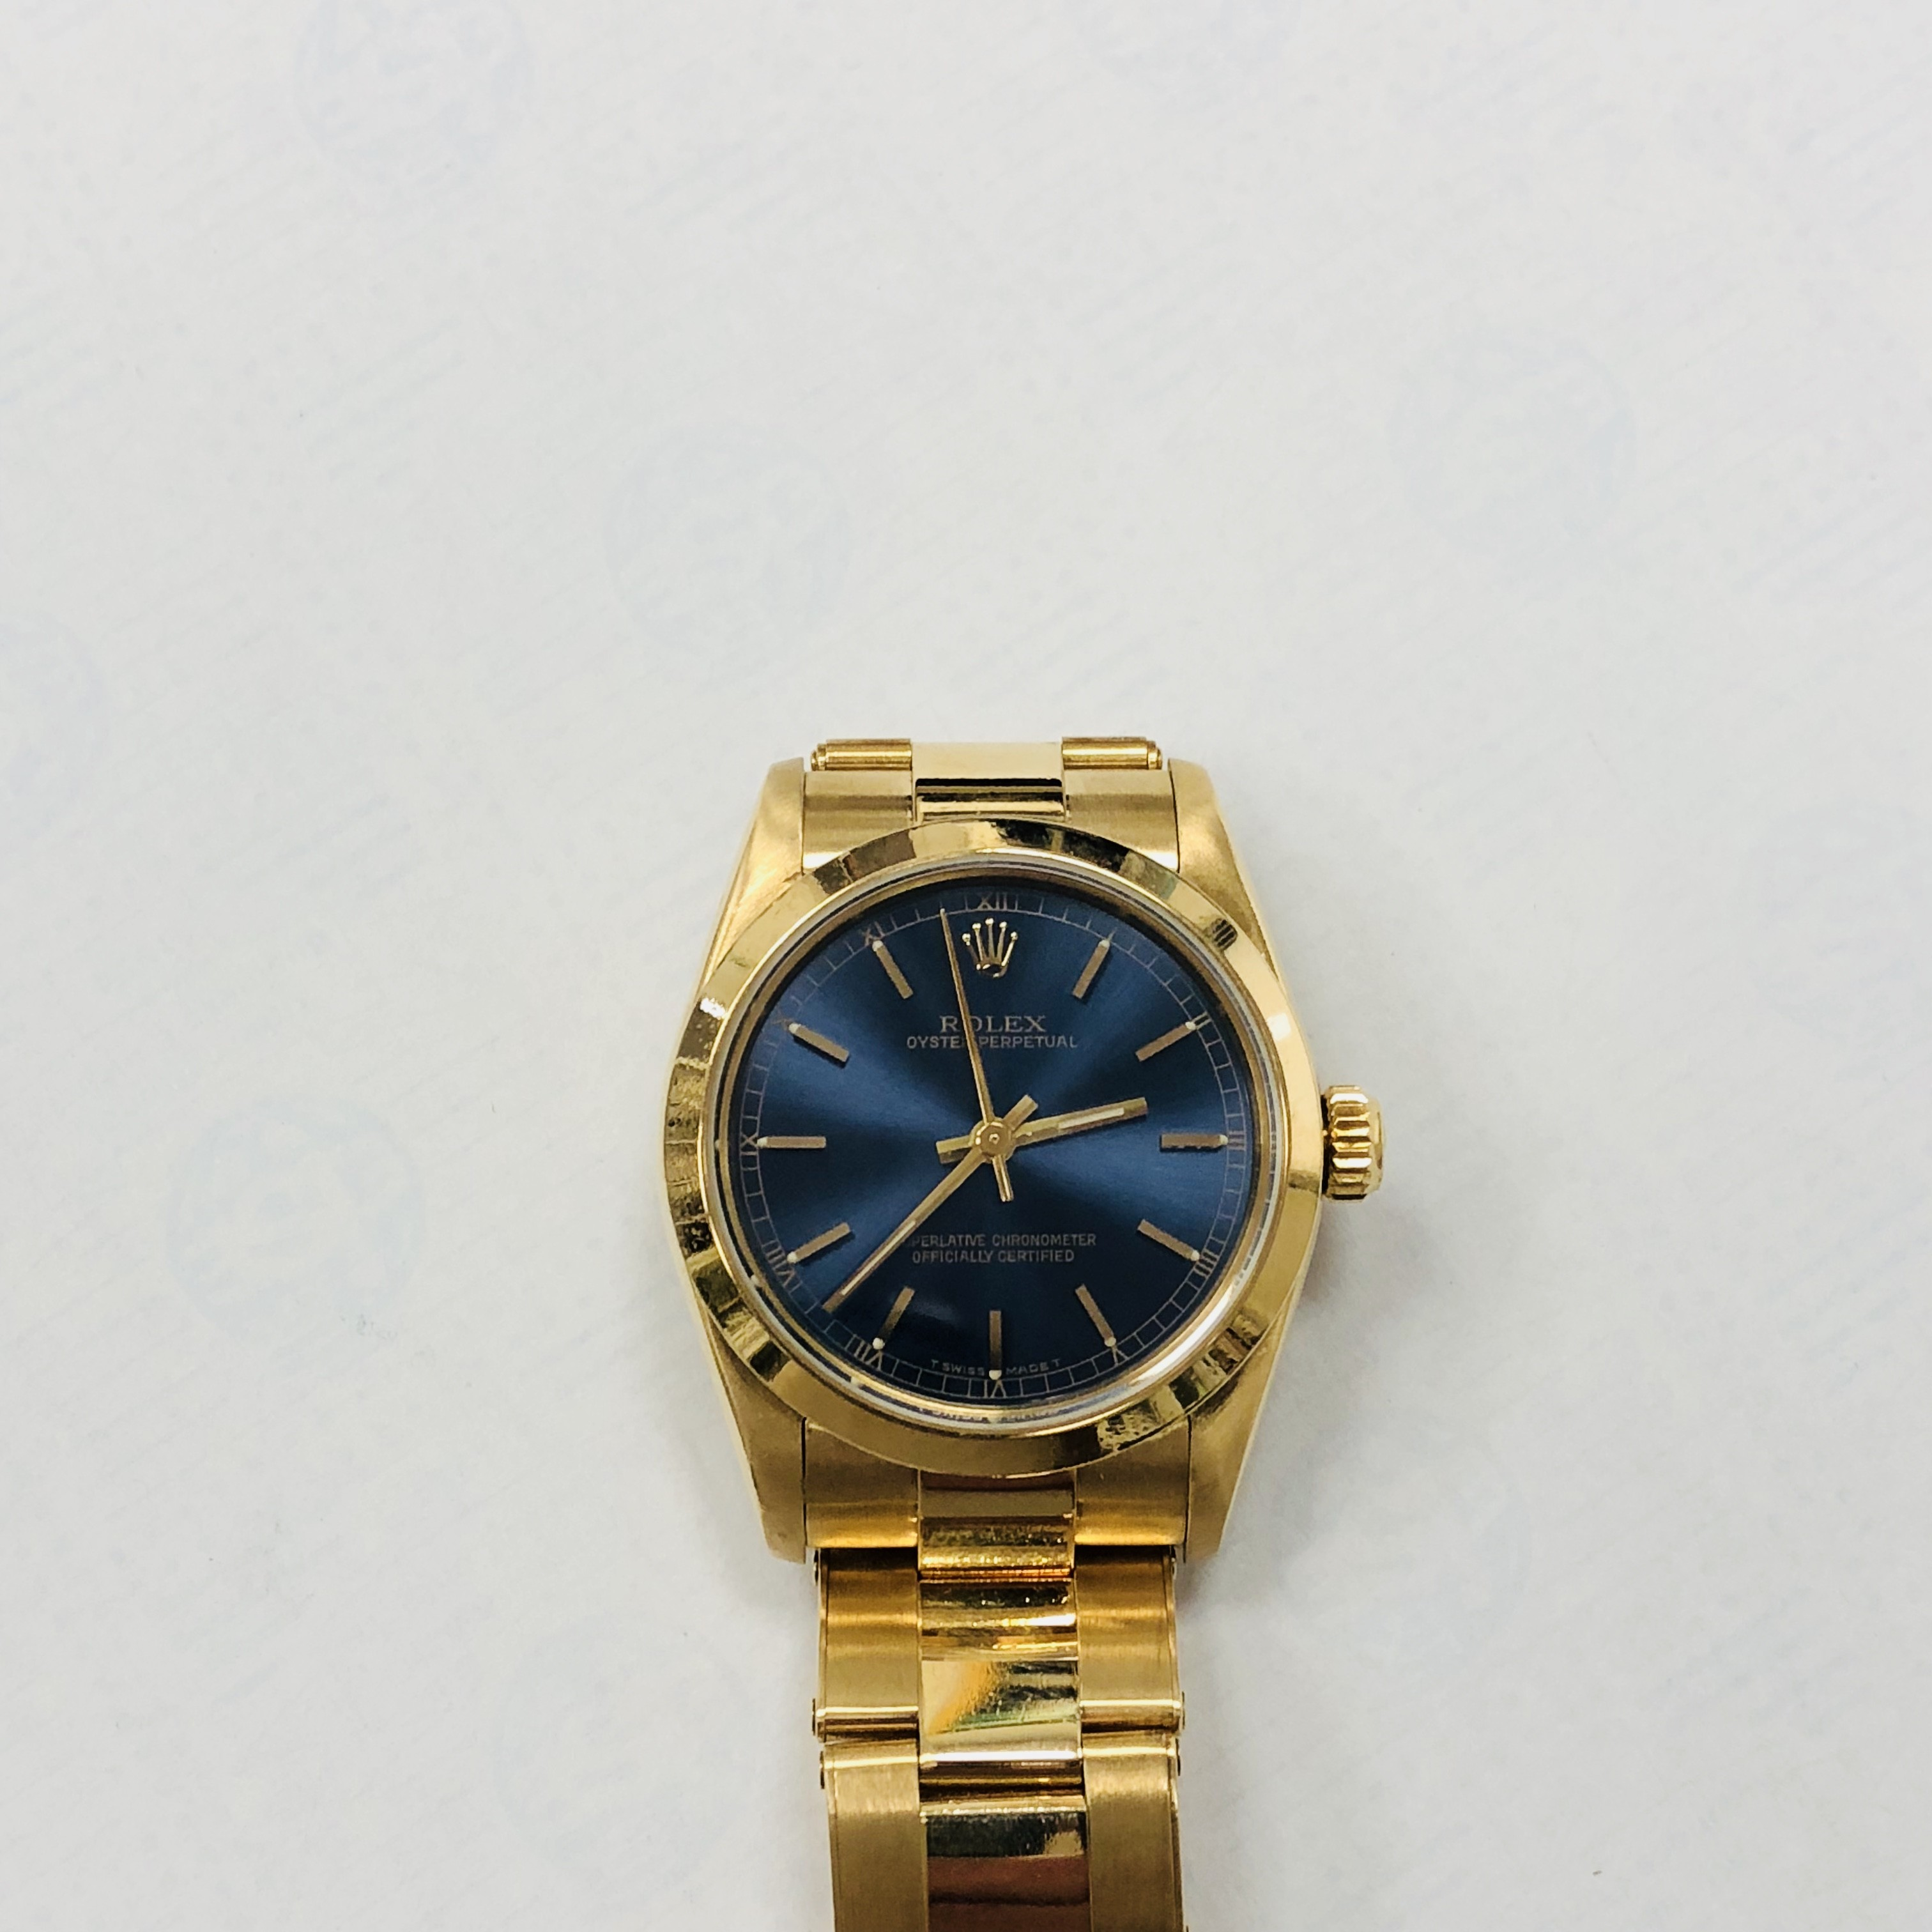 comprare on line e10e3 1ebb9 Rolex woman gold model Oyster Perpetual medium year 96 68278 used